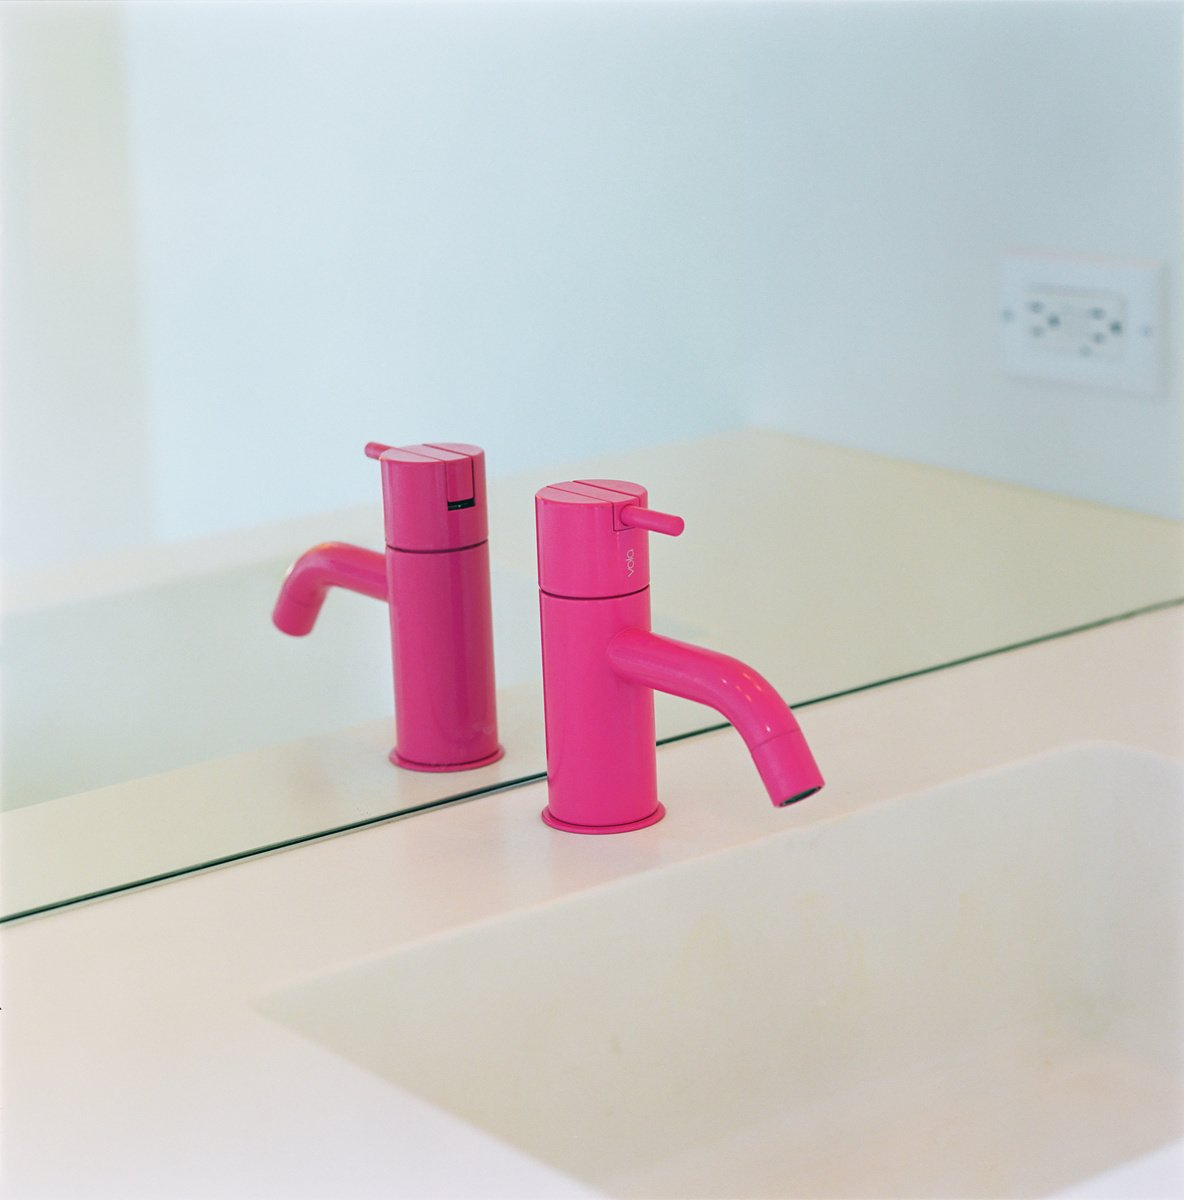 Eric Grunbaum added a hot pink powder-coated faucet by Vola for the downstairs bath in his Venice Beach home. Photo by Ye Rin Mok.  Photo 5 of 15 in How to Design with Pink